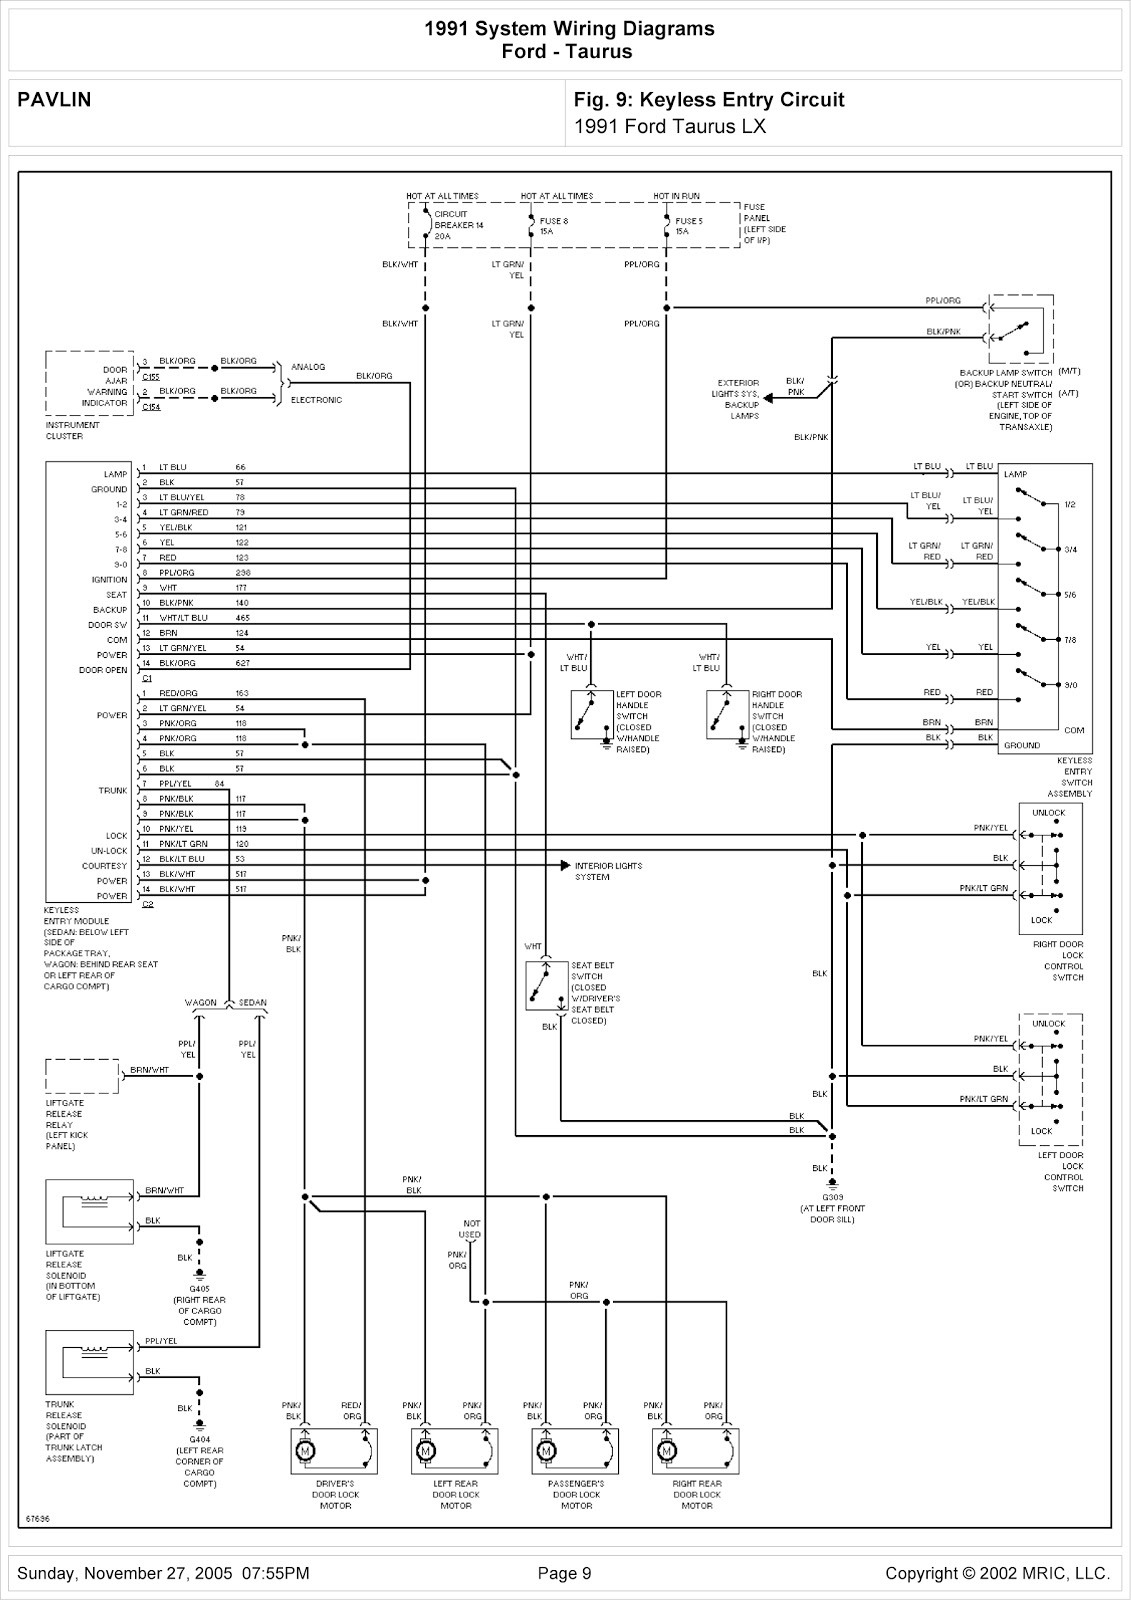 1991 ford taurus lx system wiring diagram for keyless entry circuit schematic wiring diagrams